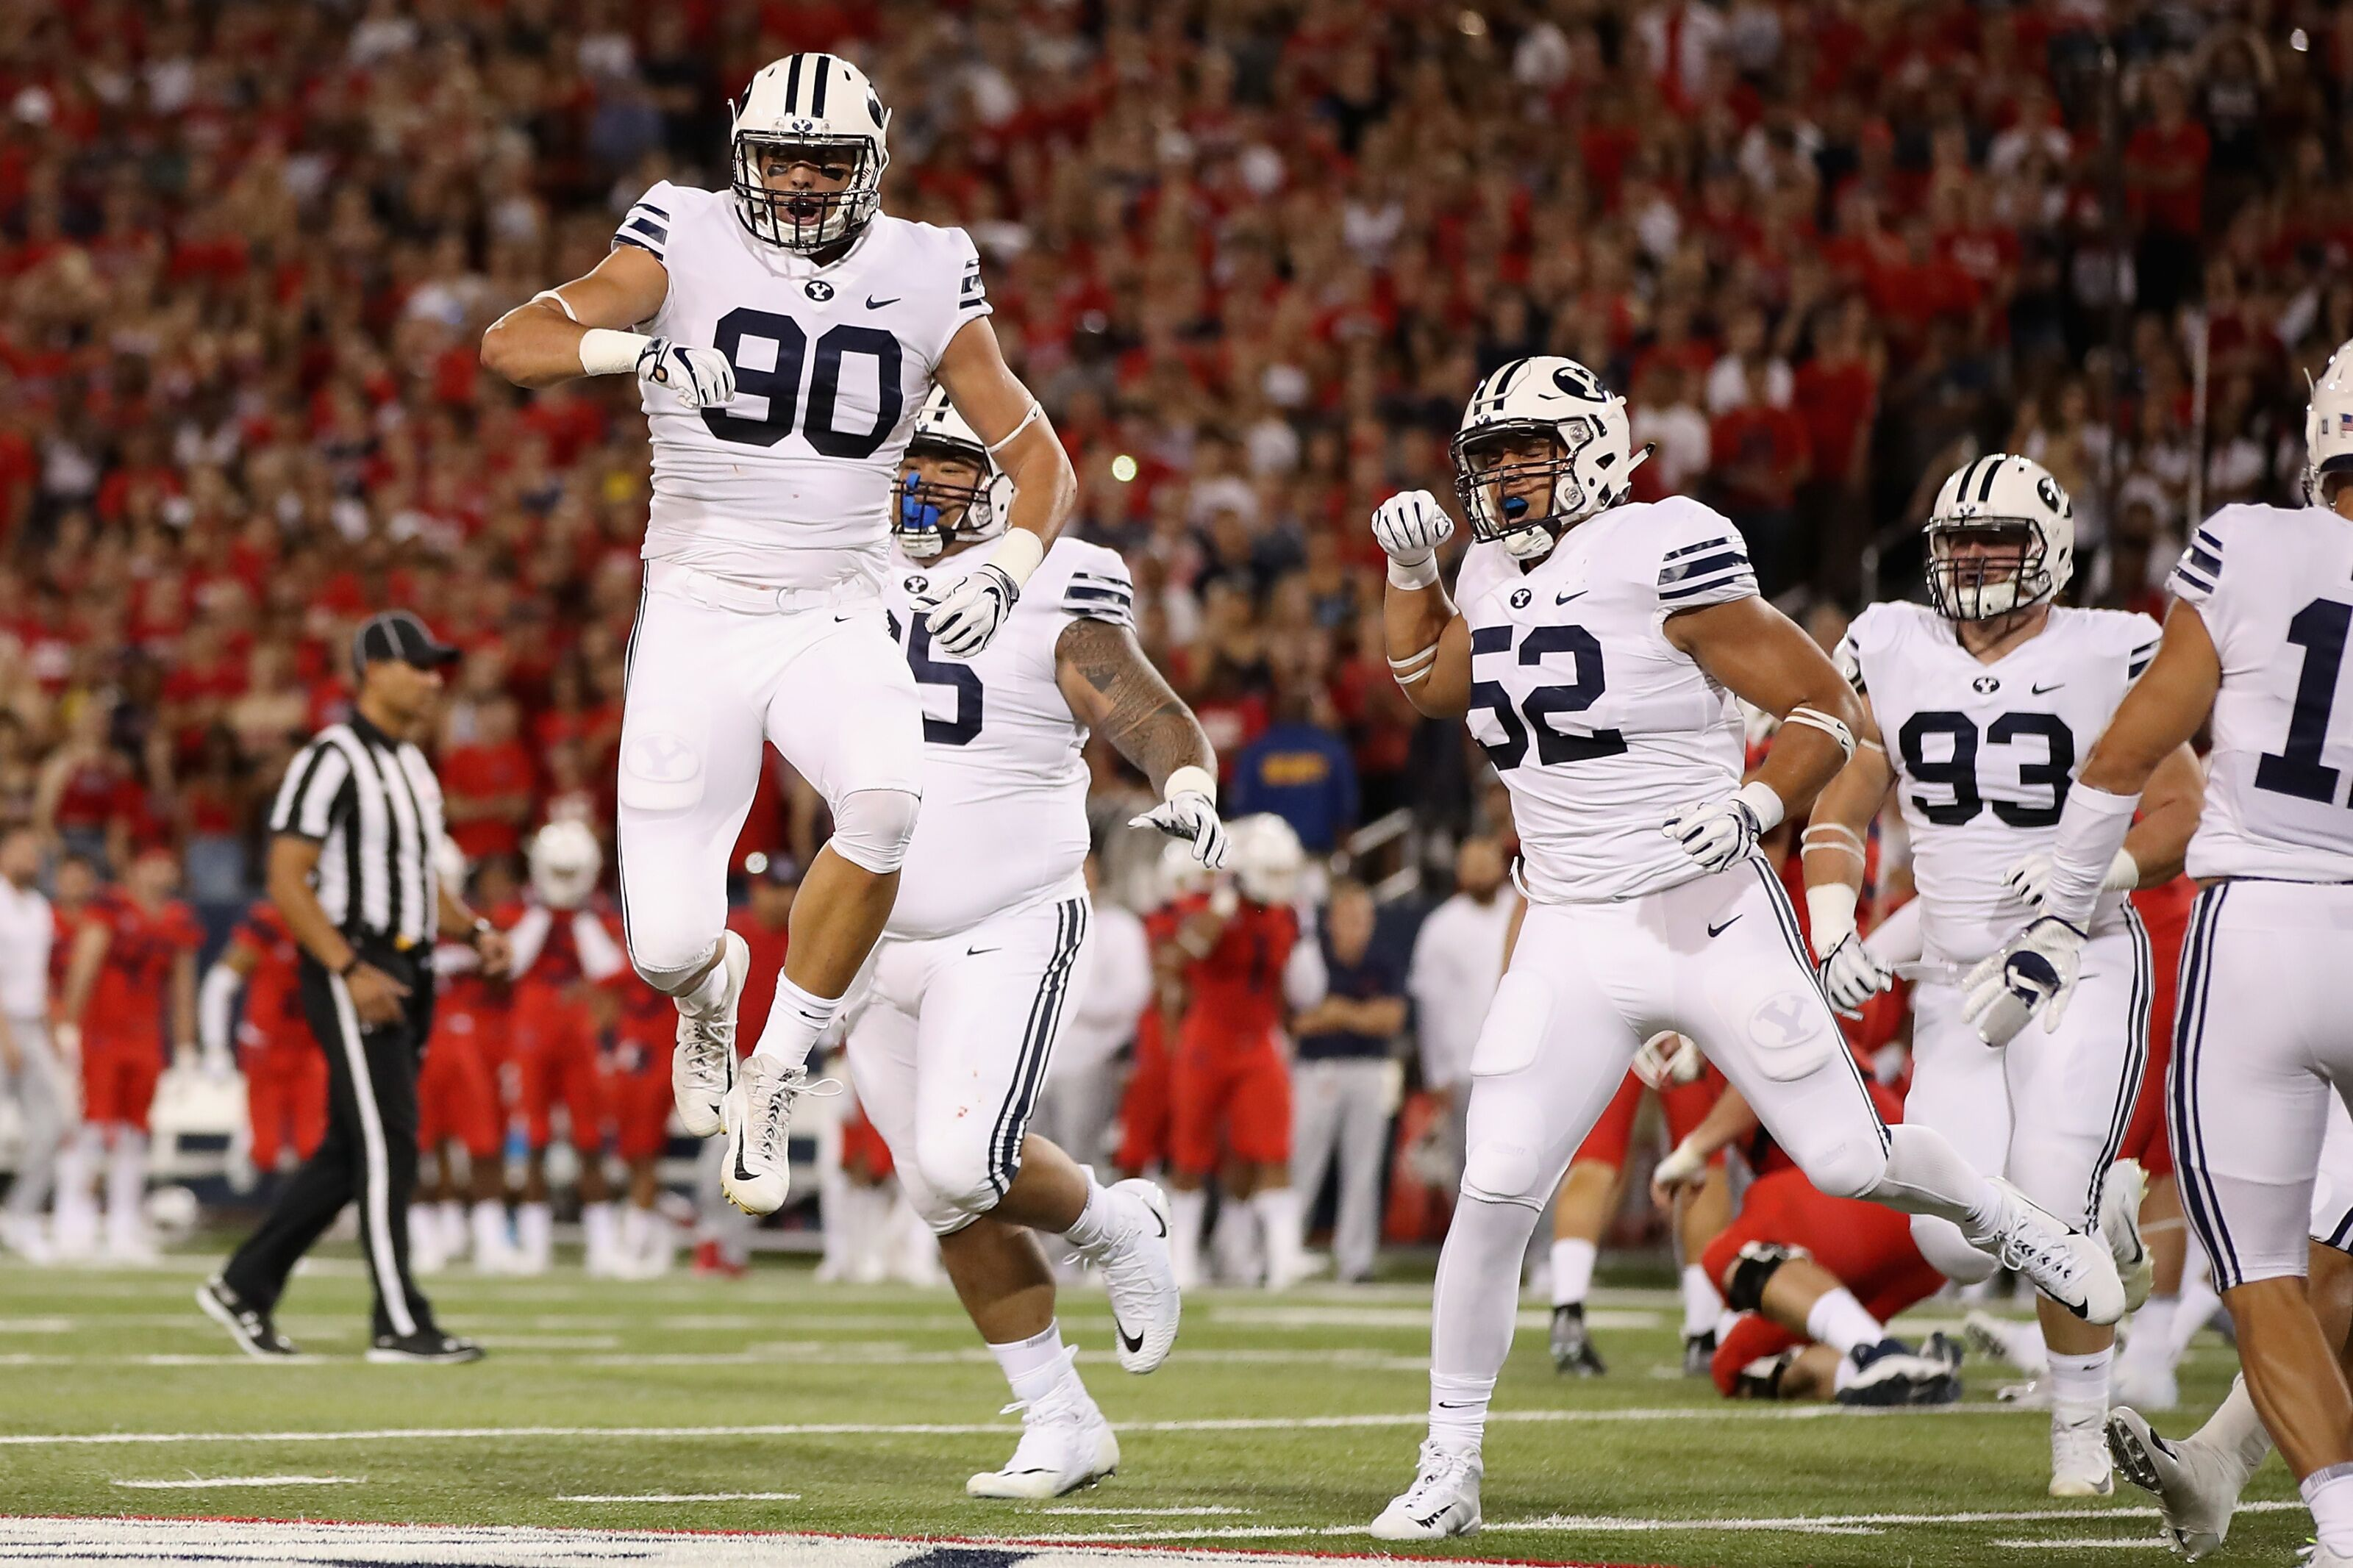 BYU Football: Cougars getting some respect after Arizona win